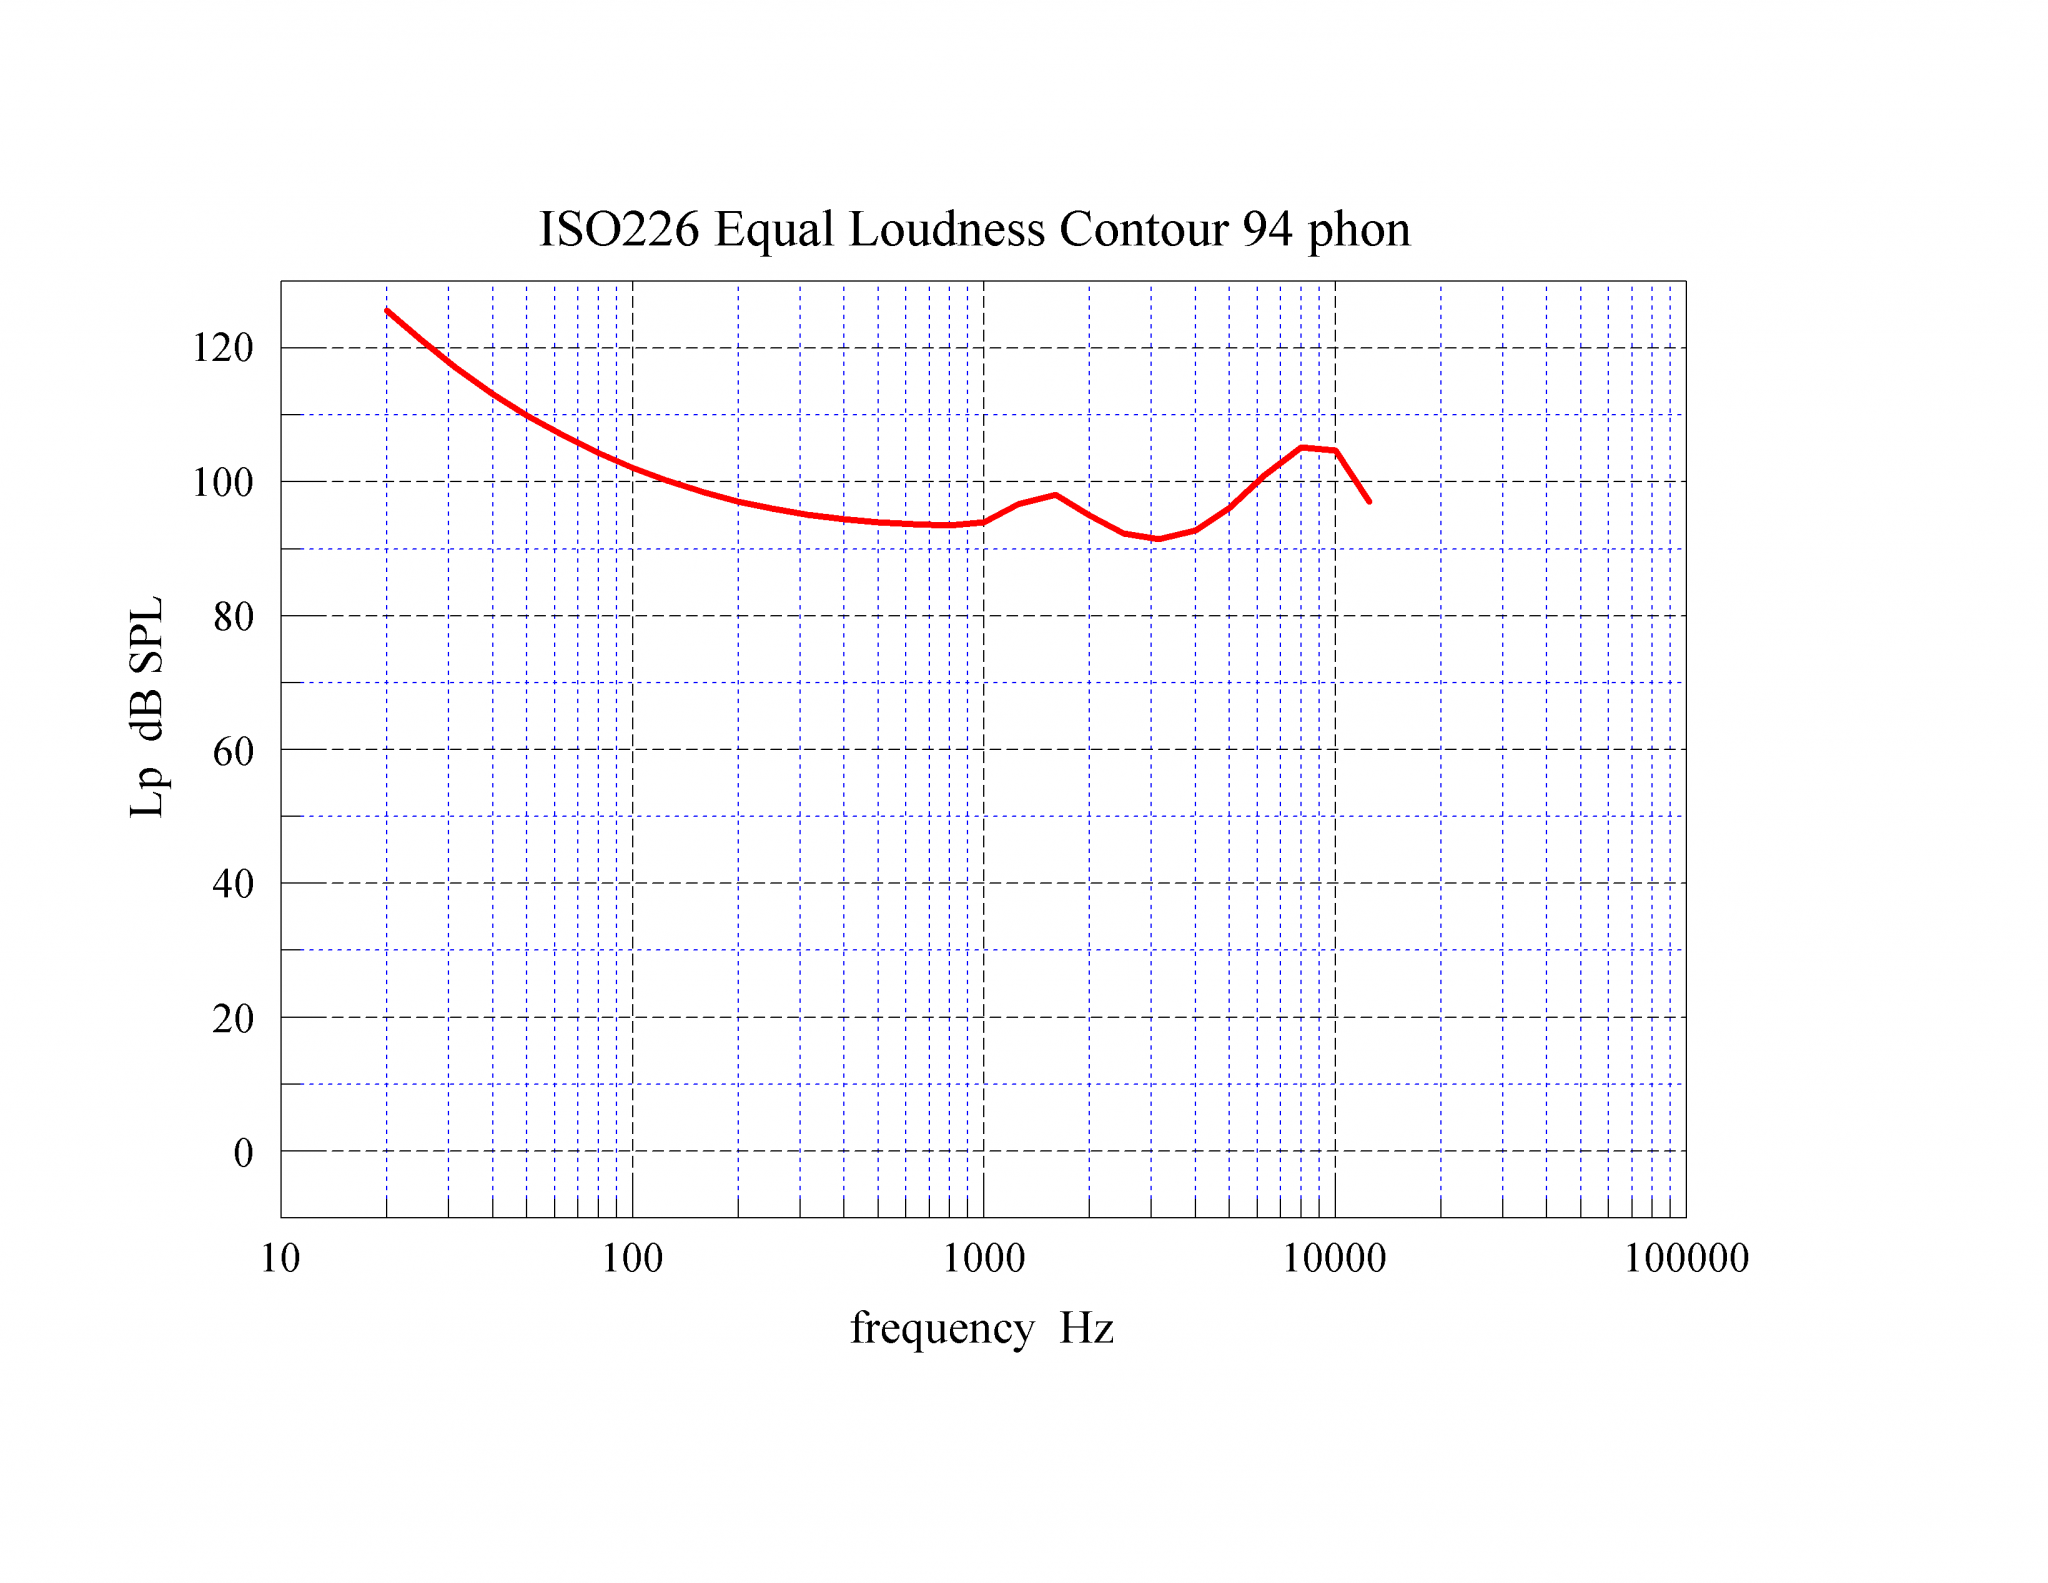 03 ISO226 Equal Loudness Contours 94 phon.png